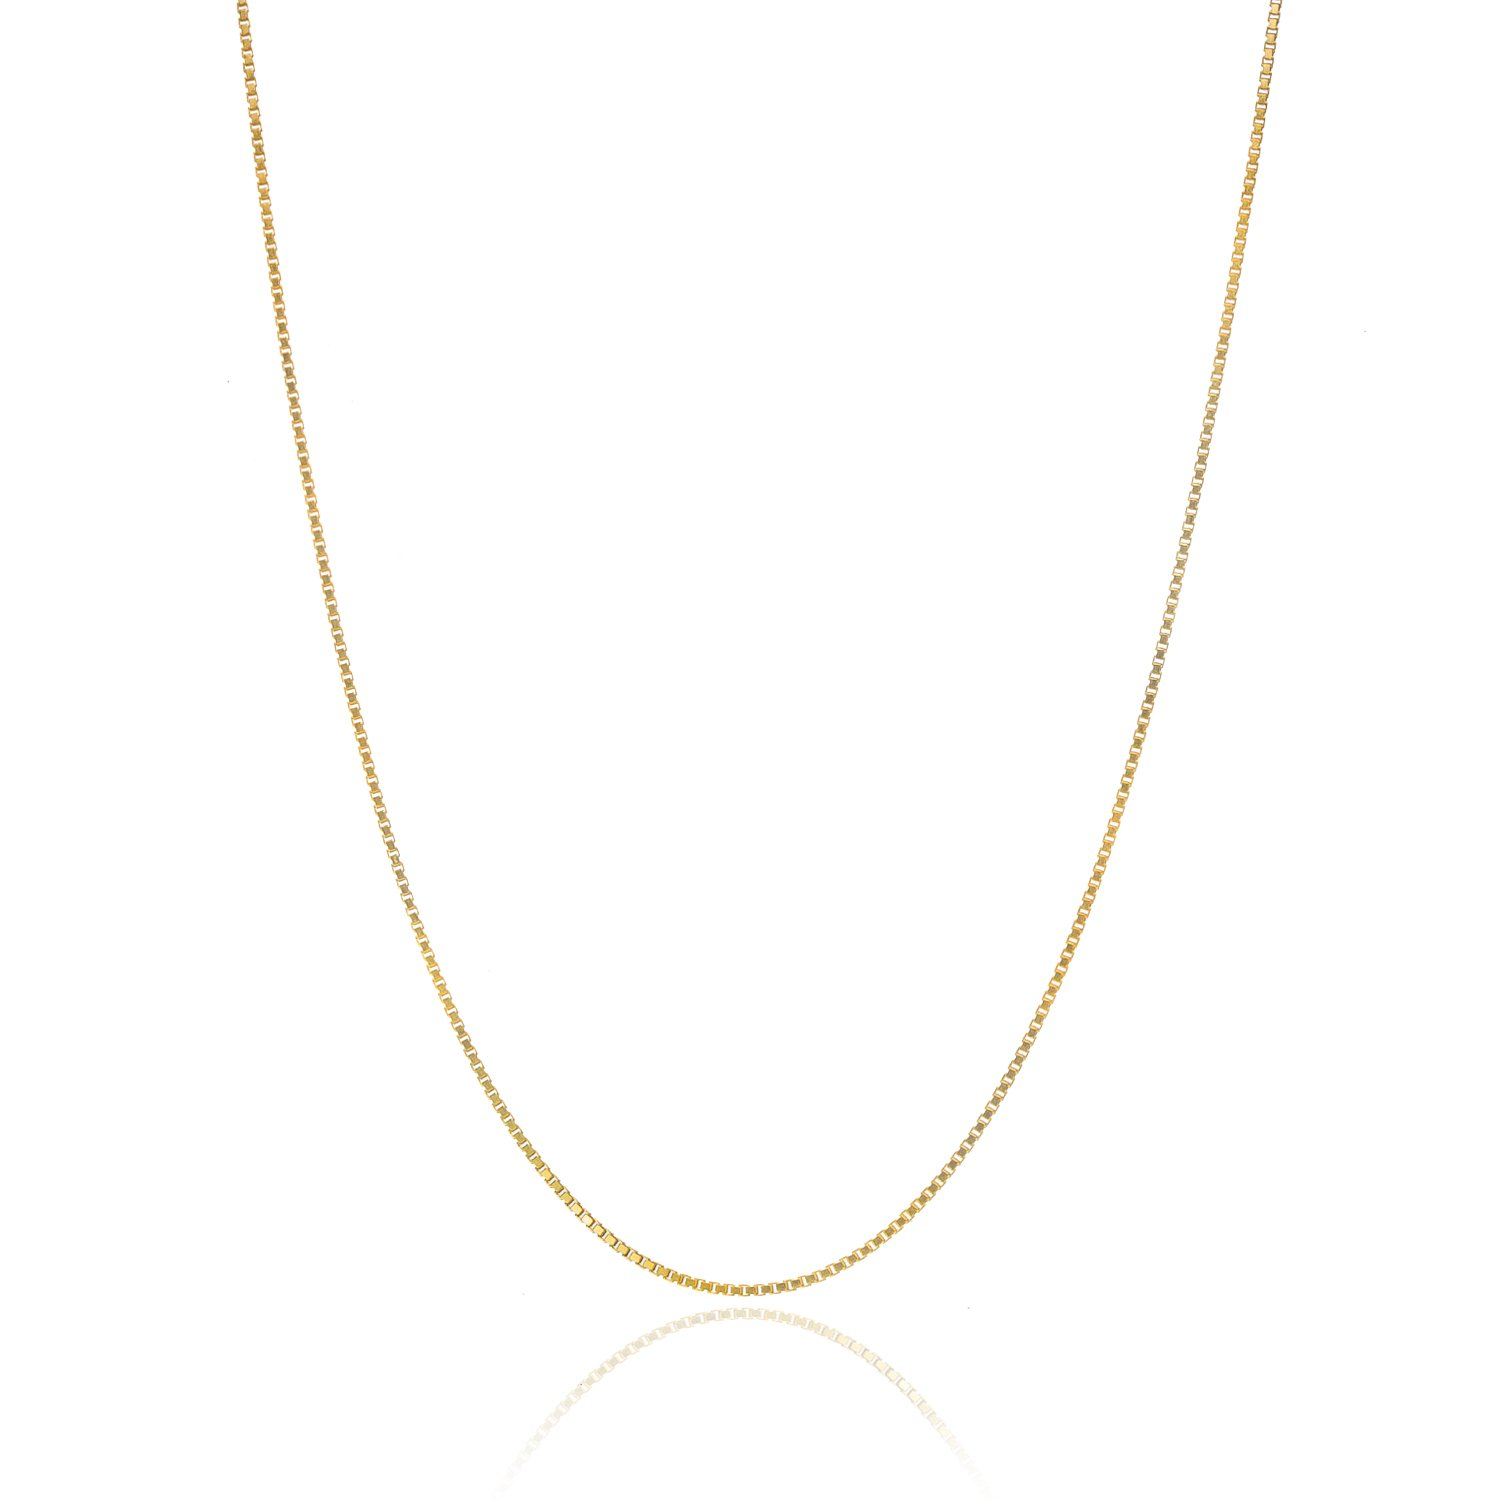 18K Gold over Sterling Silver .8mm Thin Italian Box Chain Necklace - 18''